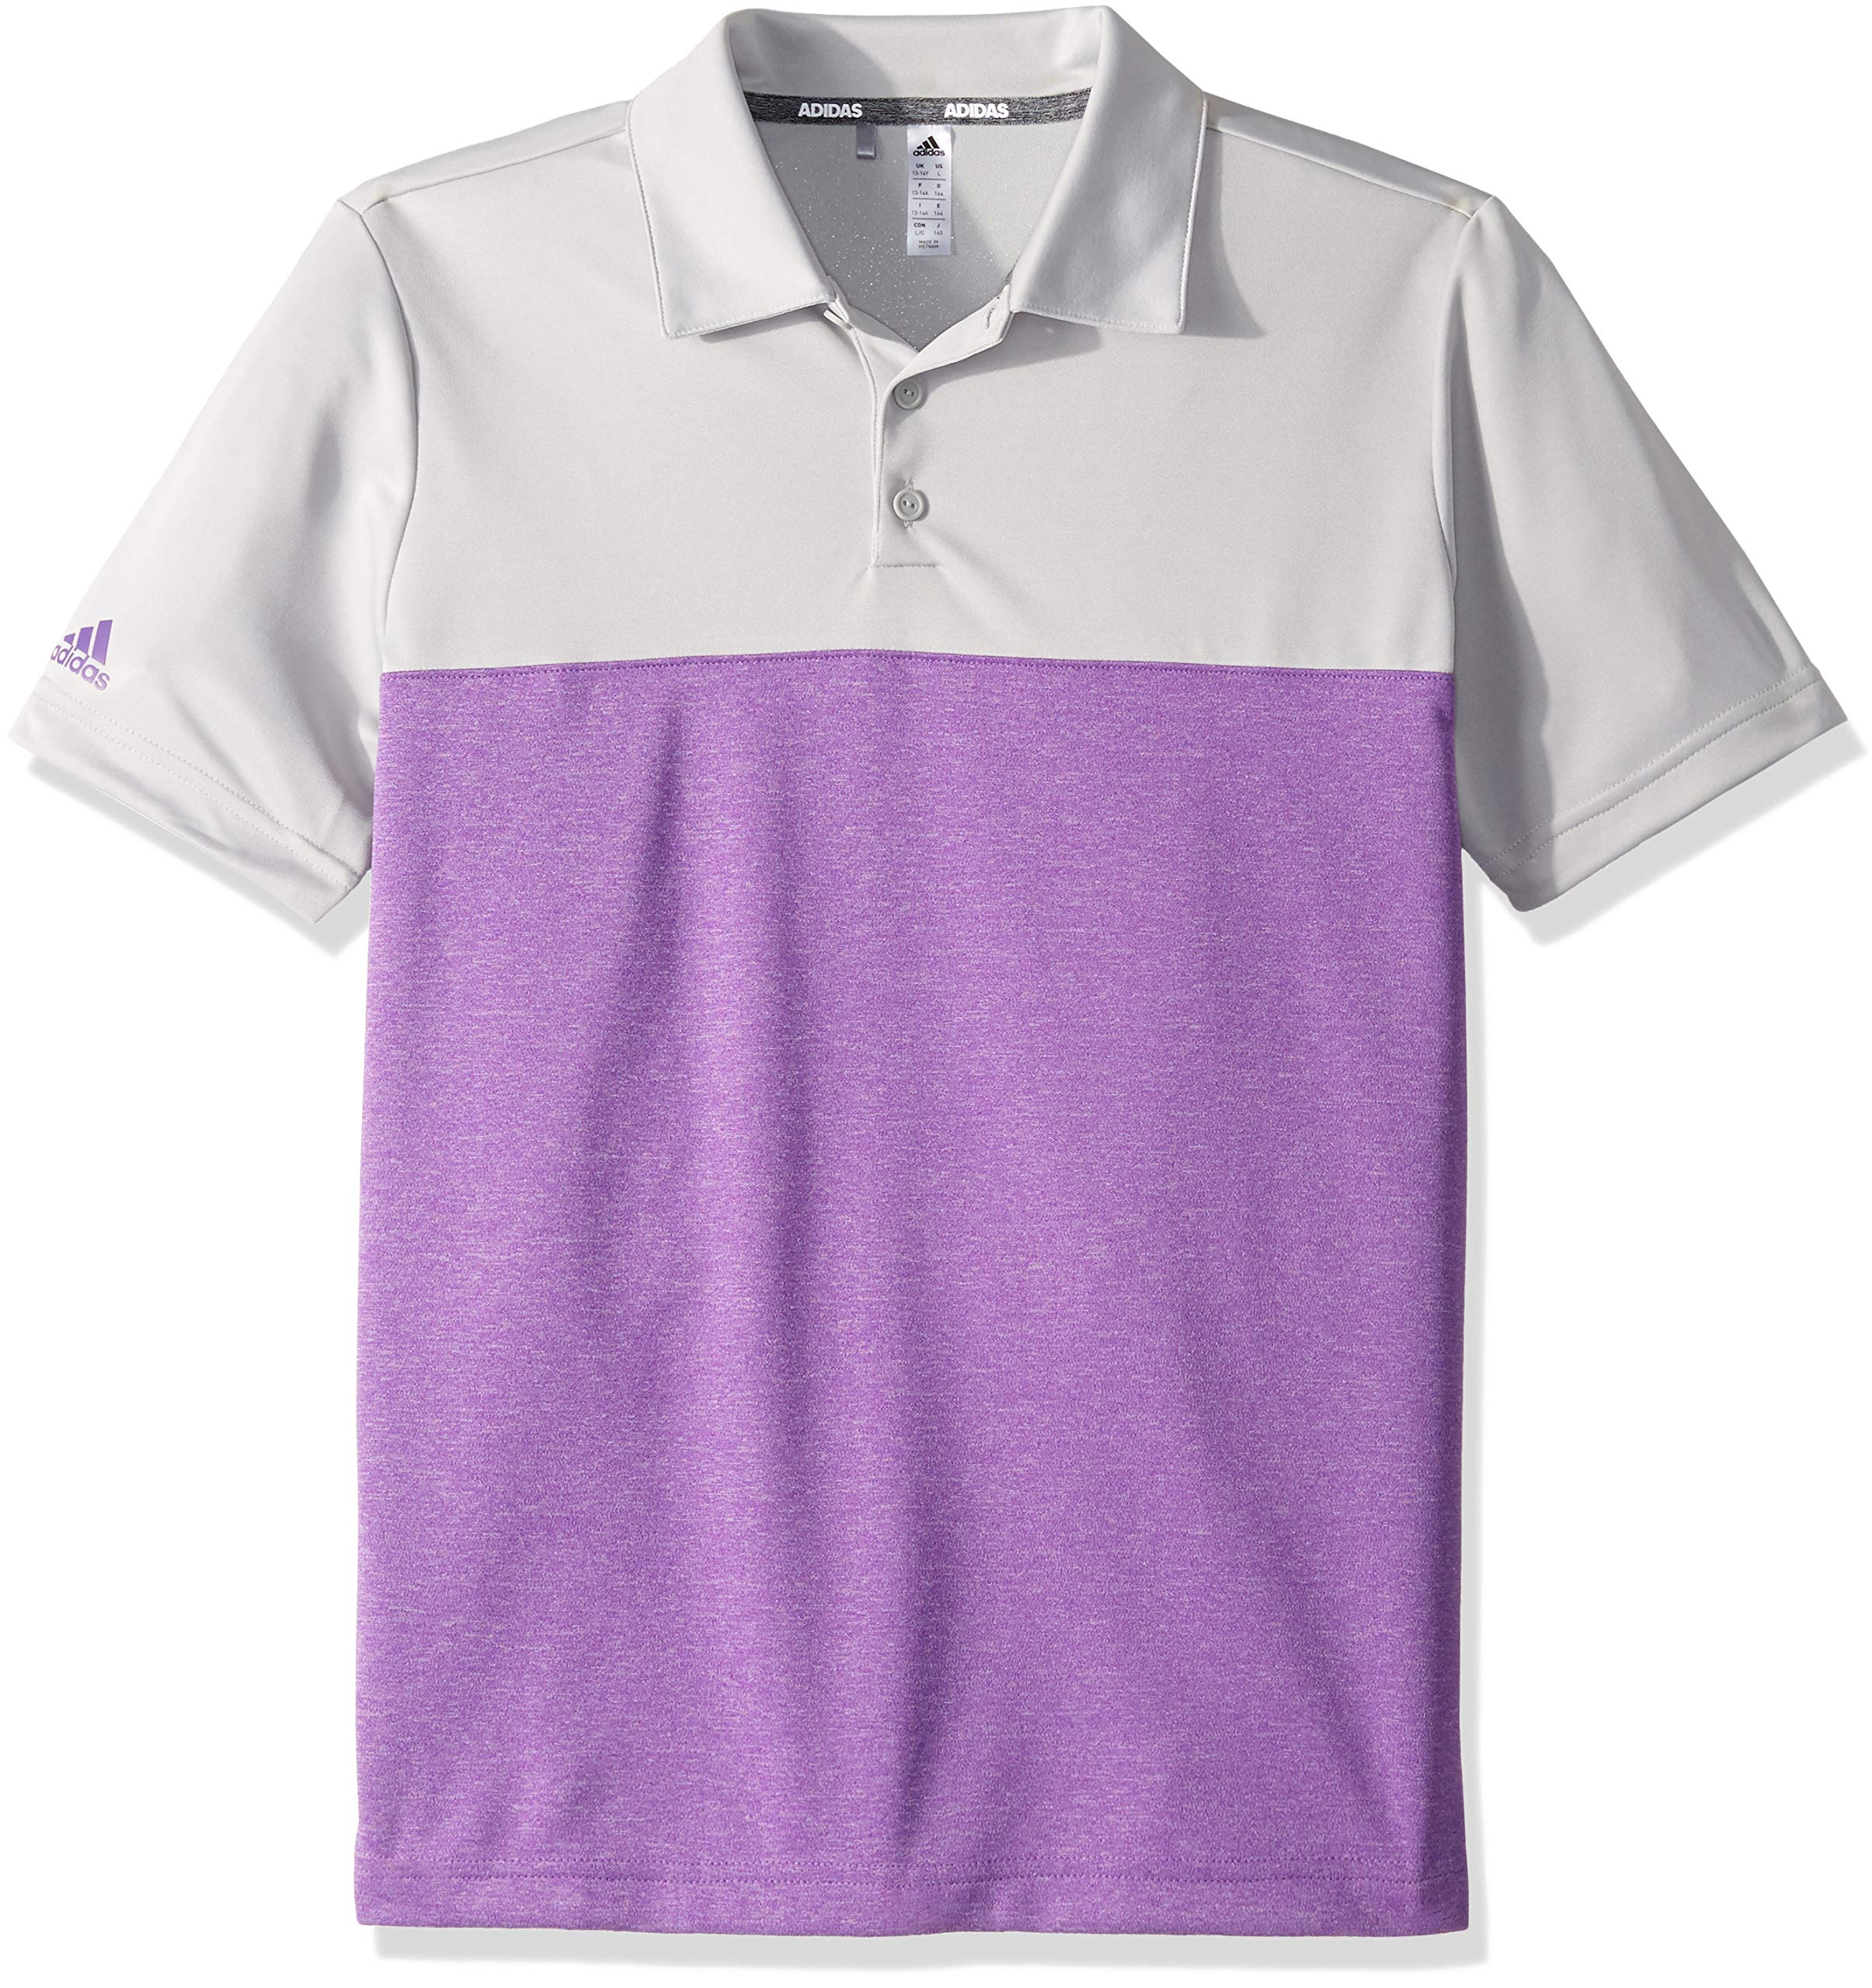 adidas Golf Heathered Color Blocked Polo, Grey Two/Active Purple Heather, Small by adidas